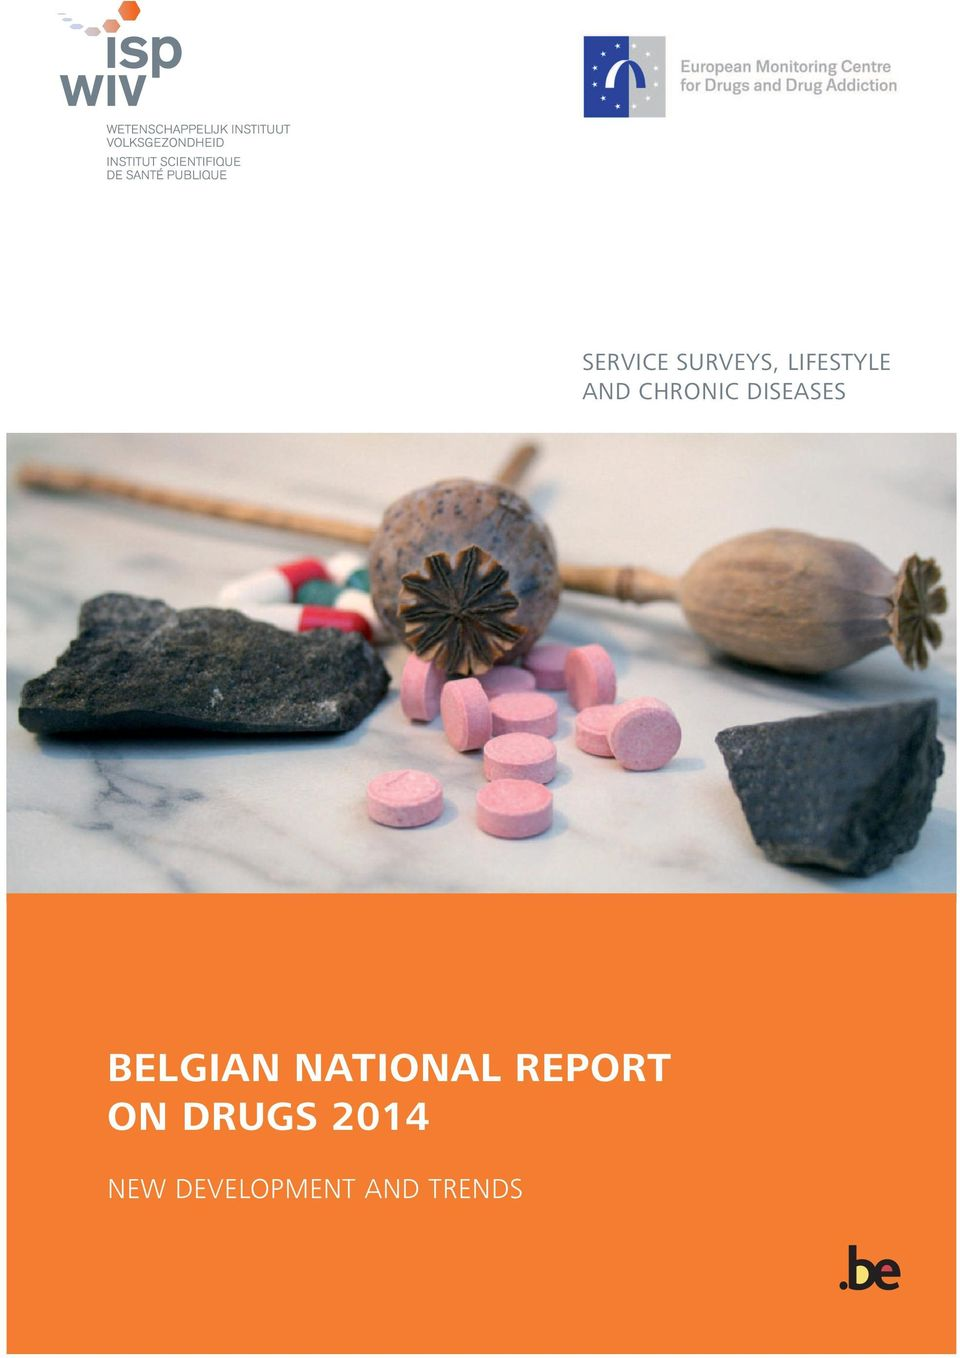 BELGIAN NATIONAL REPORT ON